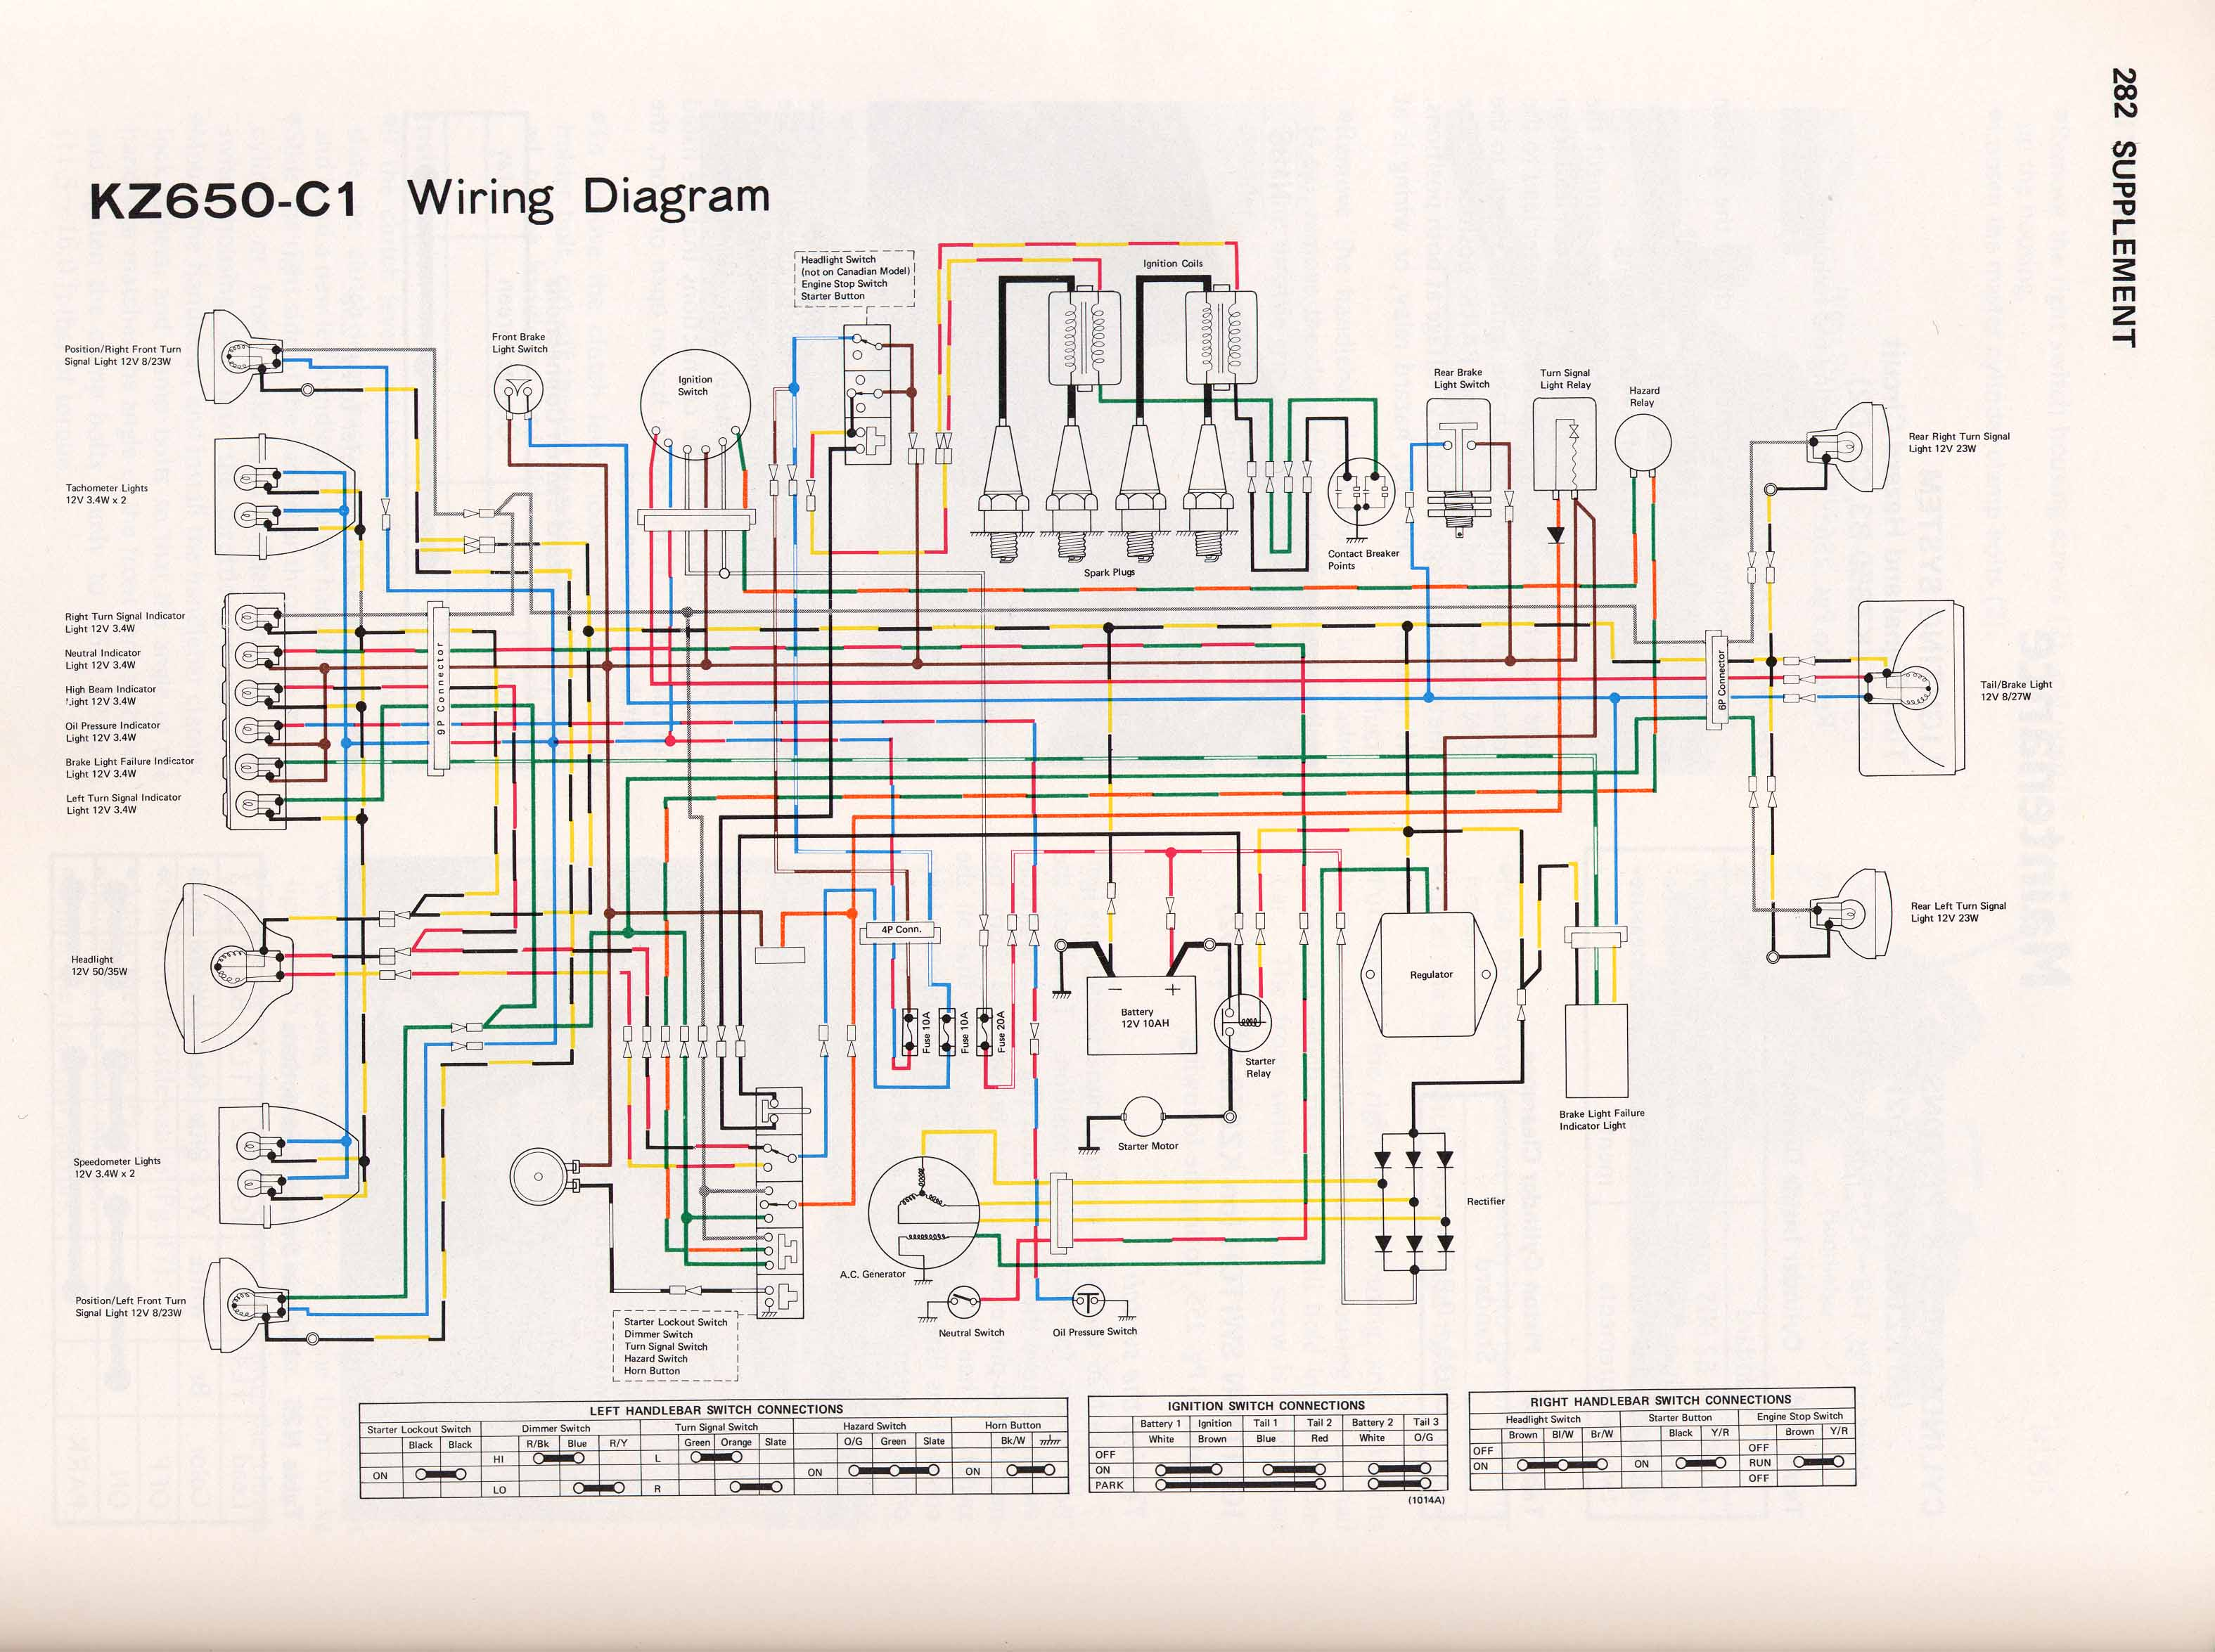 KZ650 C1 kawasaki z650 wiring diagram kawasaki wiring diagrams instruction 1980 kz650 wiring diagram at alyssarenee.co